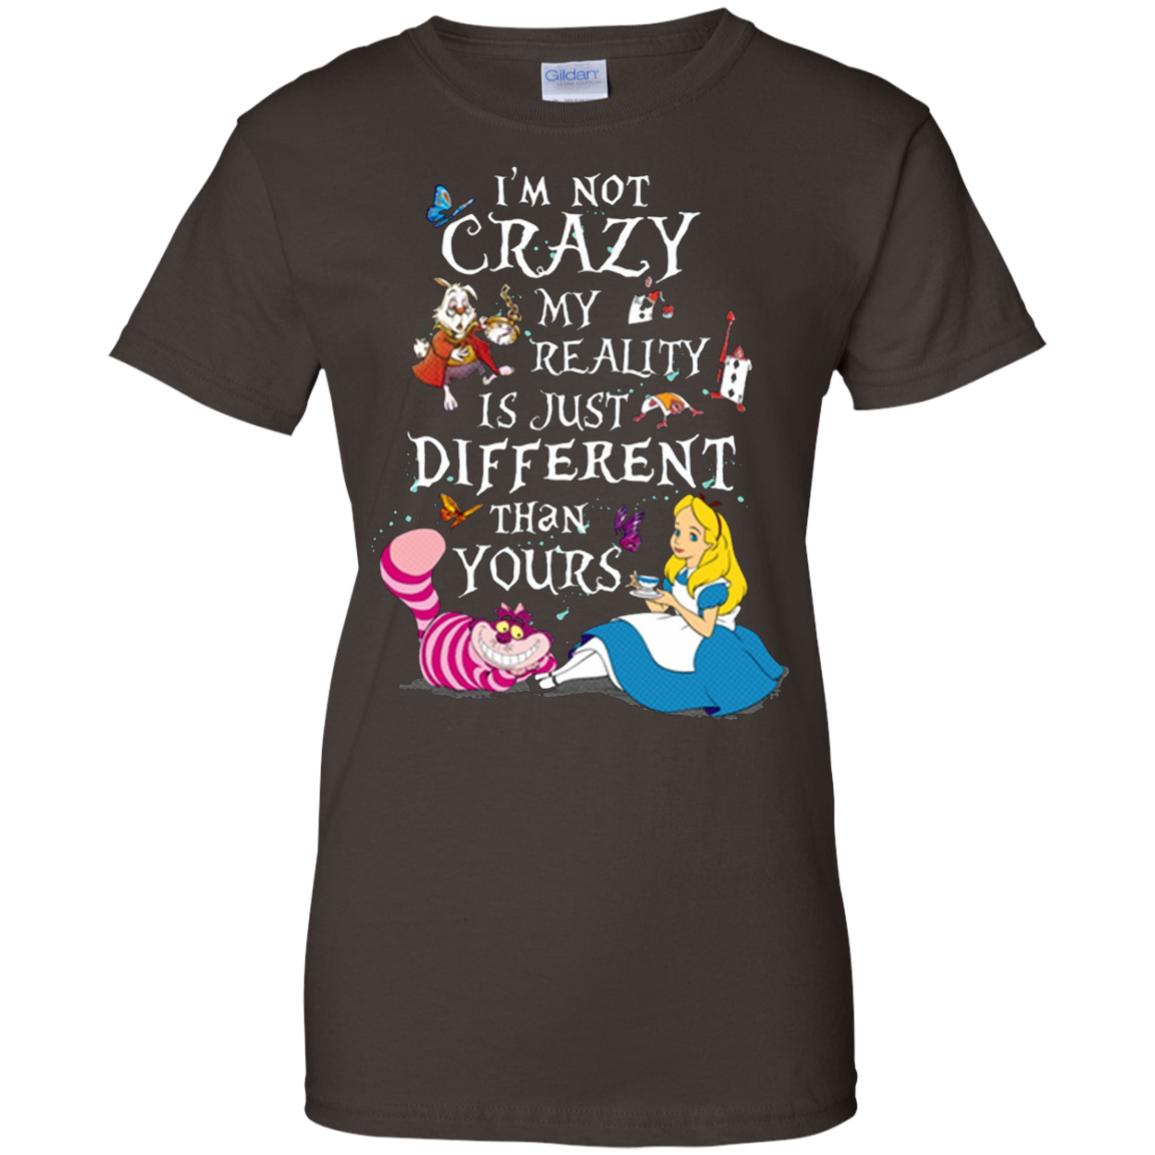 I'm Not Crazy My Reality Is Just Different Than Yours Tshirt